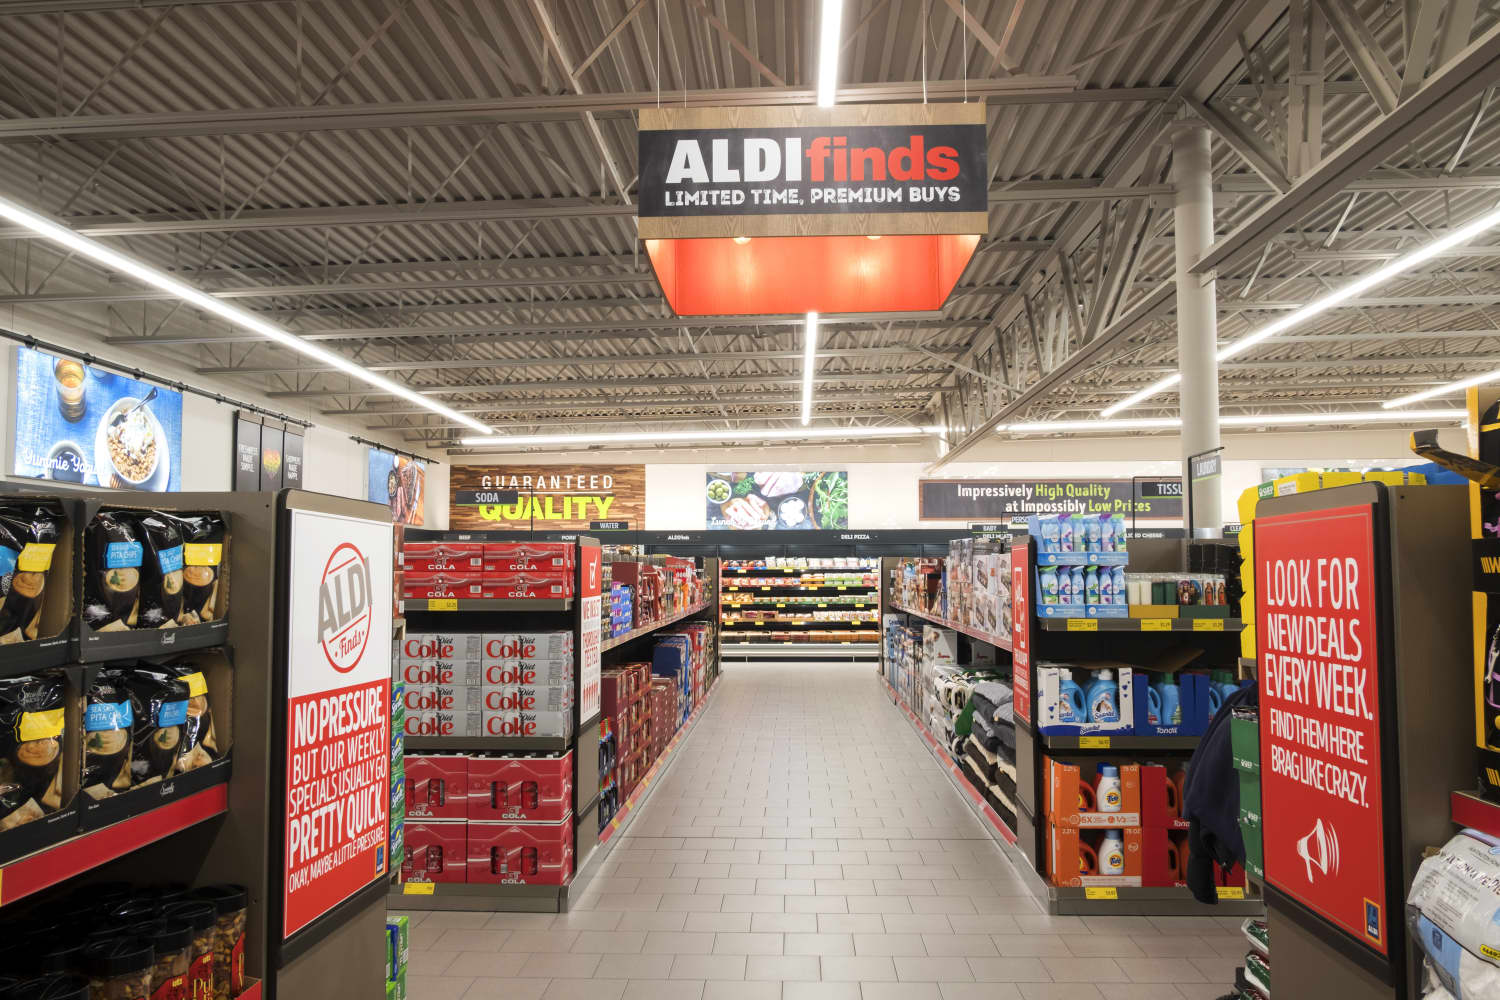 You Can Now Buy Aldi And Kohl's Product At The Same Time